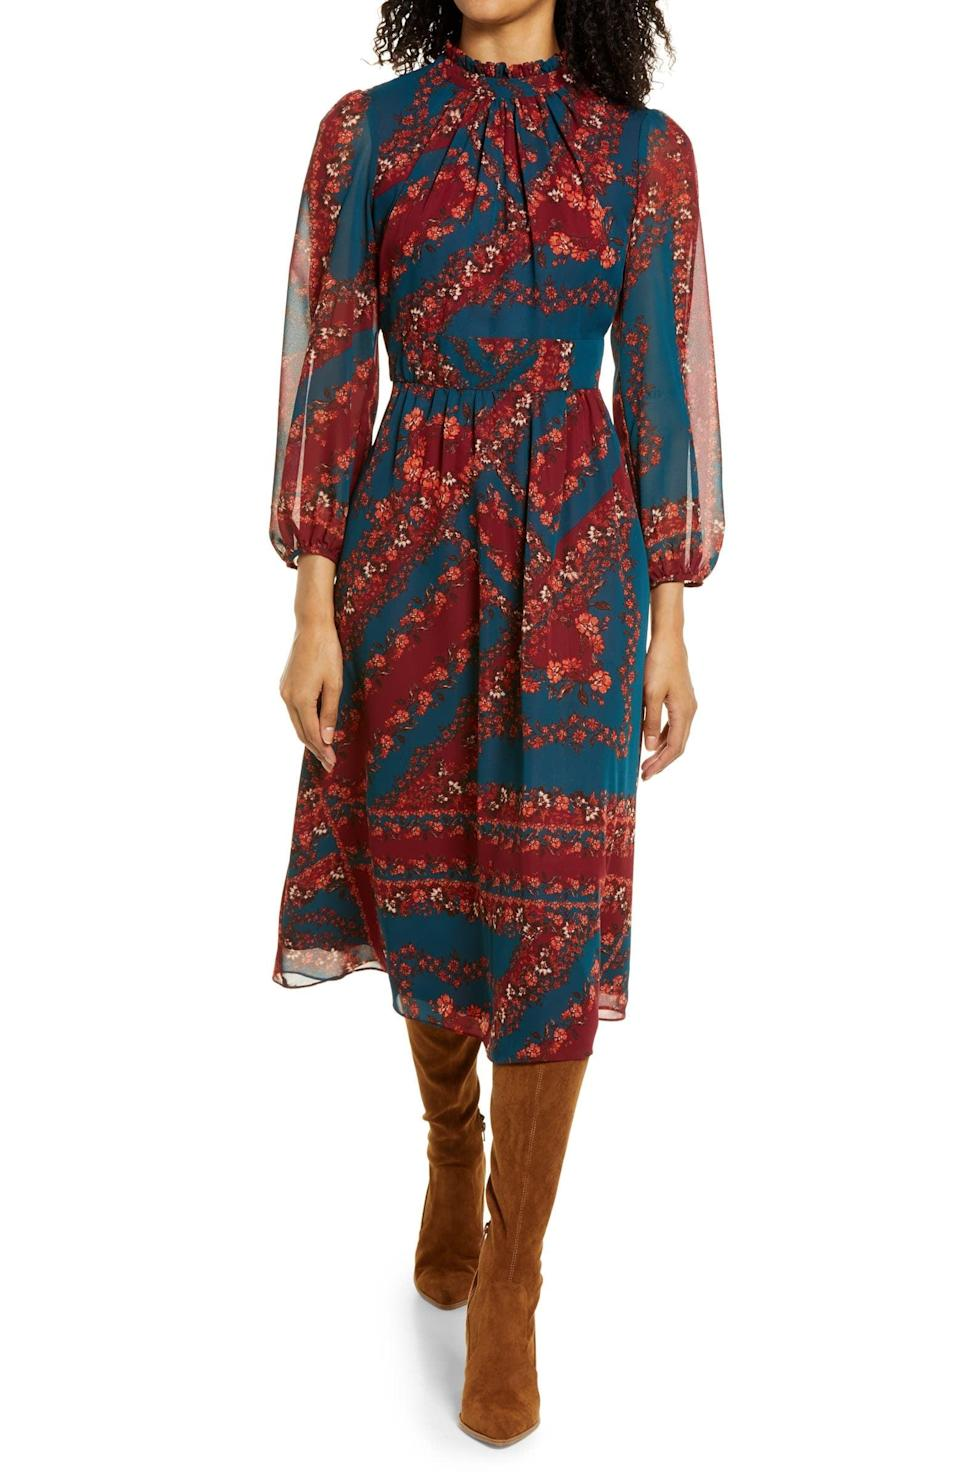 <p>This <span>Julia Jordan Floral Long-Sleeve A-Line Midi Dress</span> ($129) was so popular last year, it was brought back again. Get it before it disappears once more.</p>